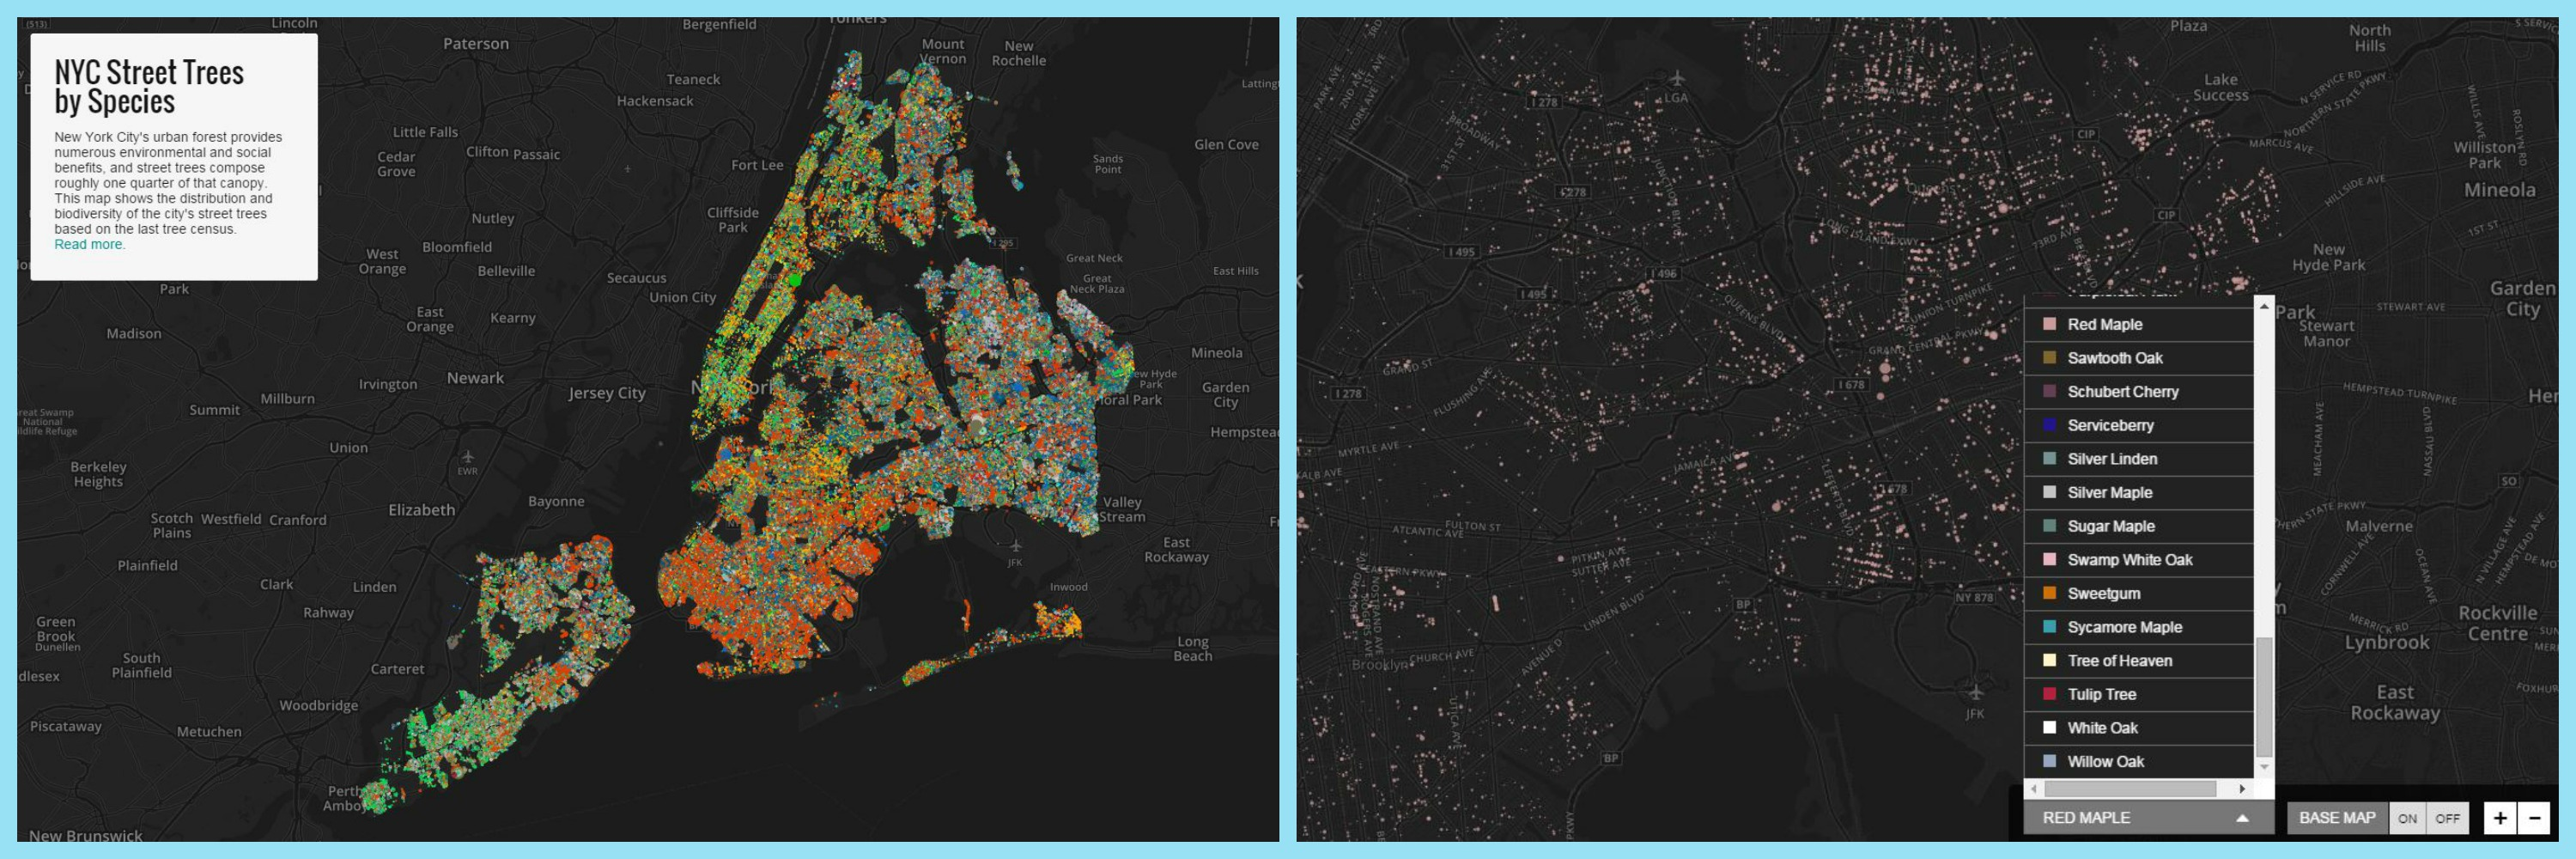 Data Stories of the week - Trees in NYC